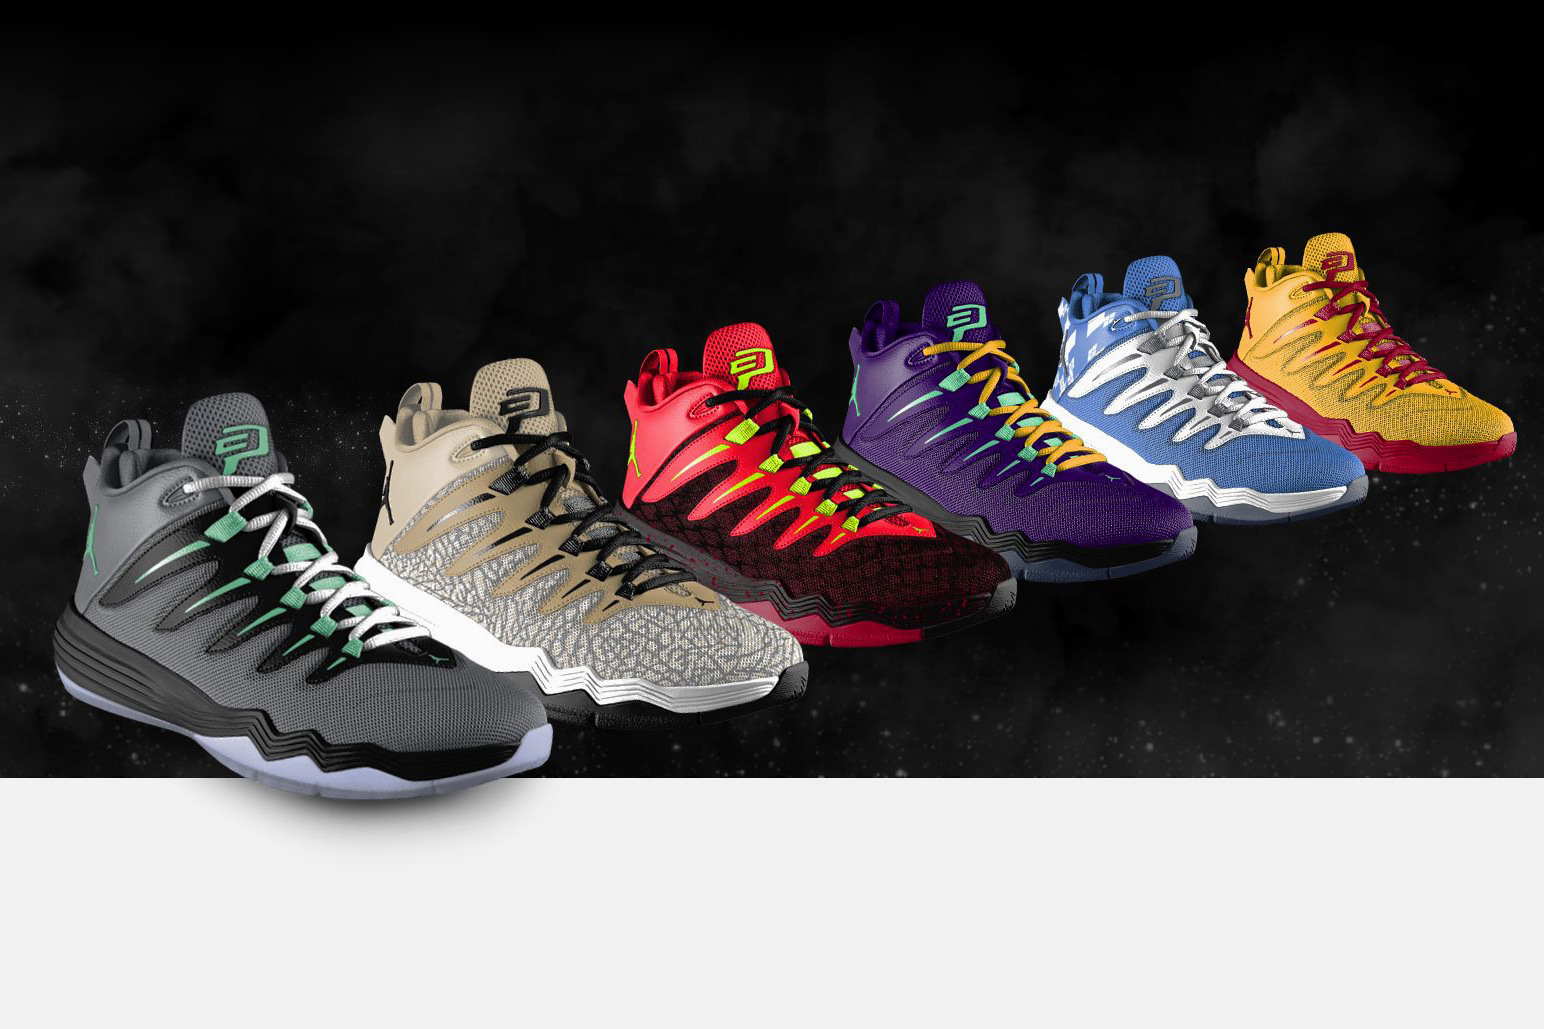 Create Chris Paul's Game Shoes